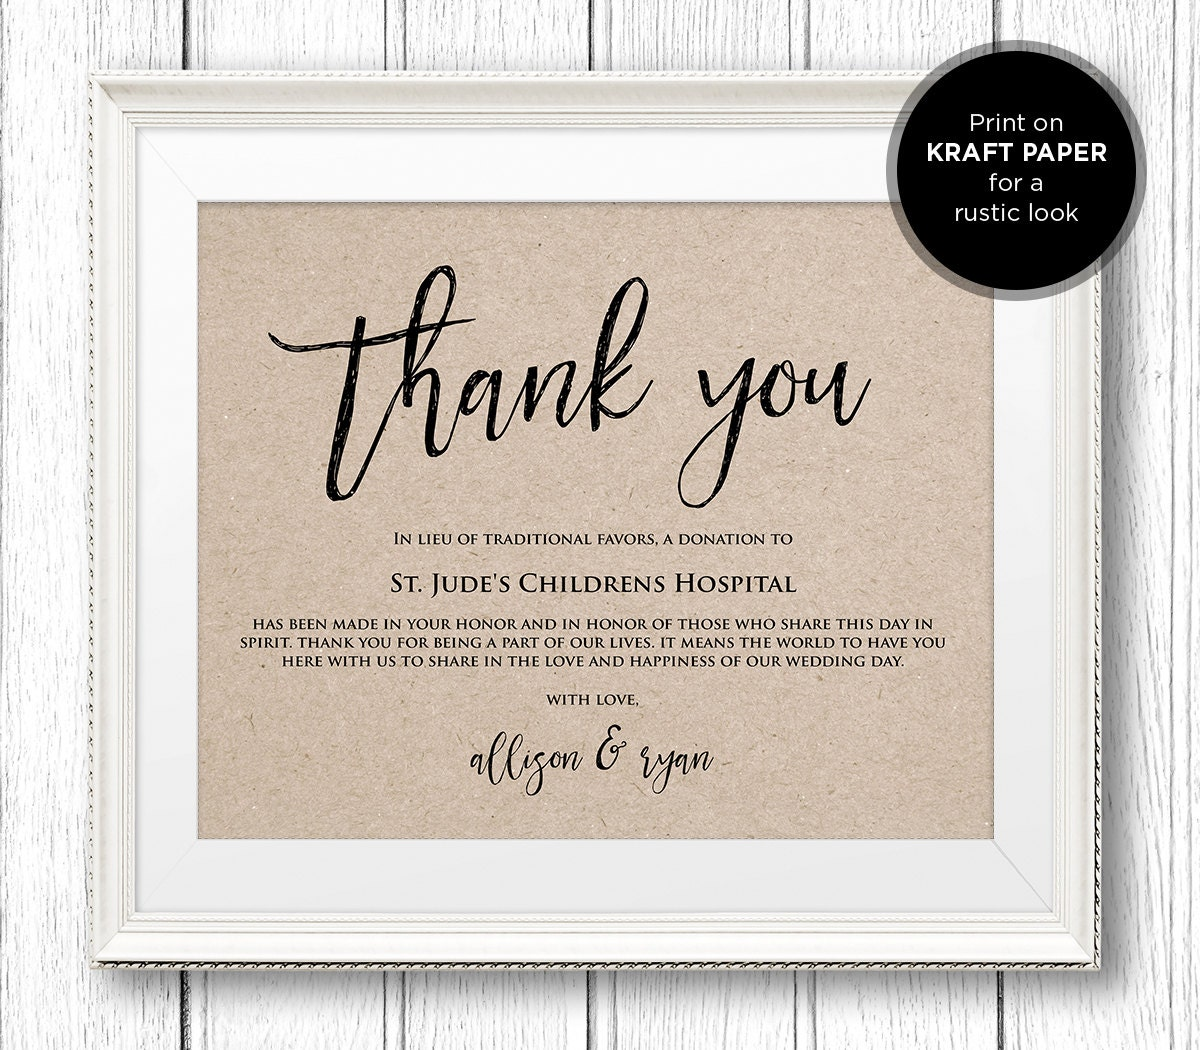 Luxury Thank You Favors For Wedding Frieze - The Wedding Ideas ...